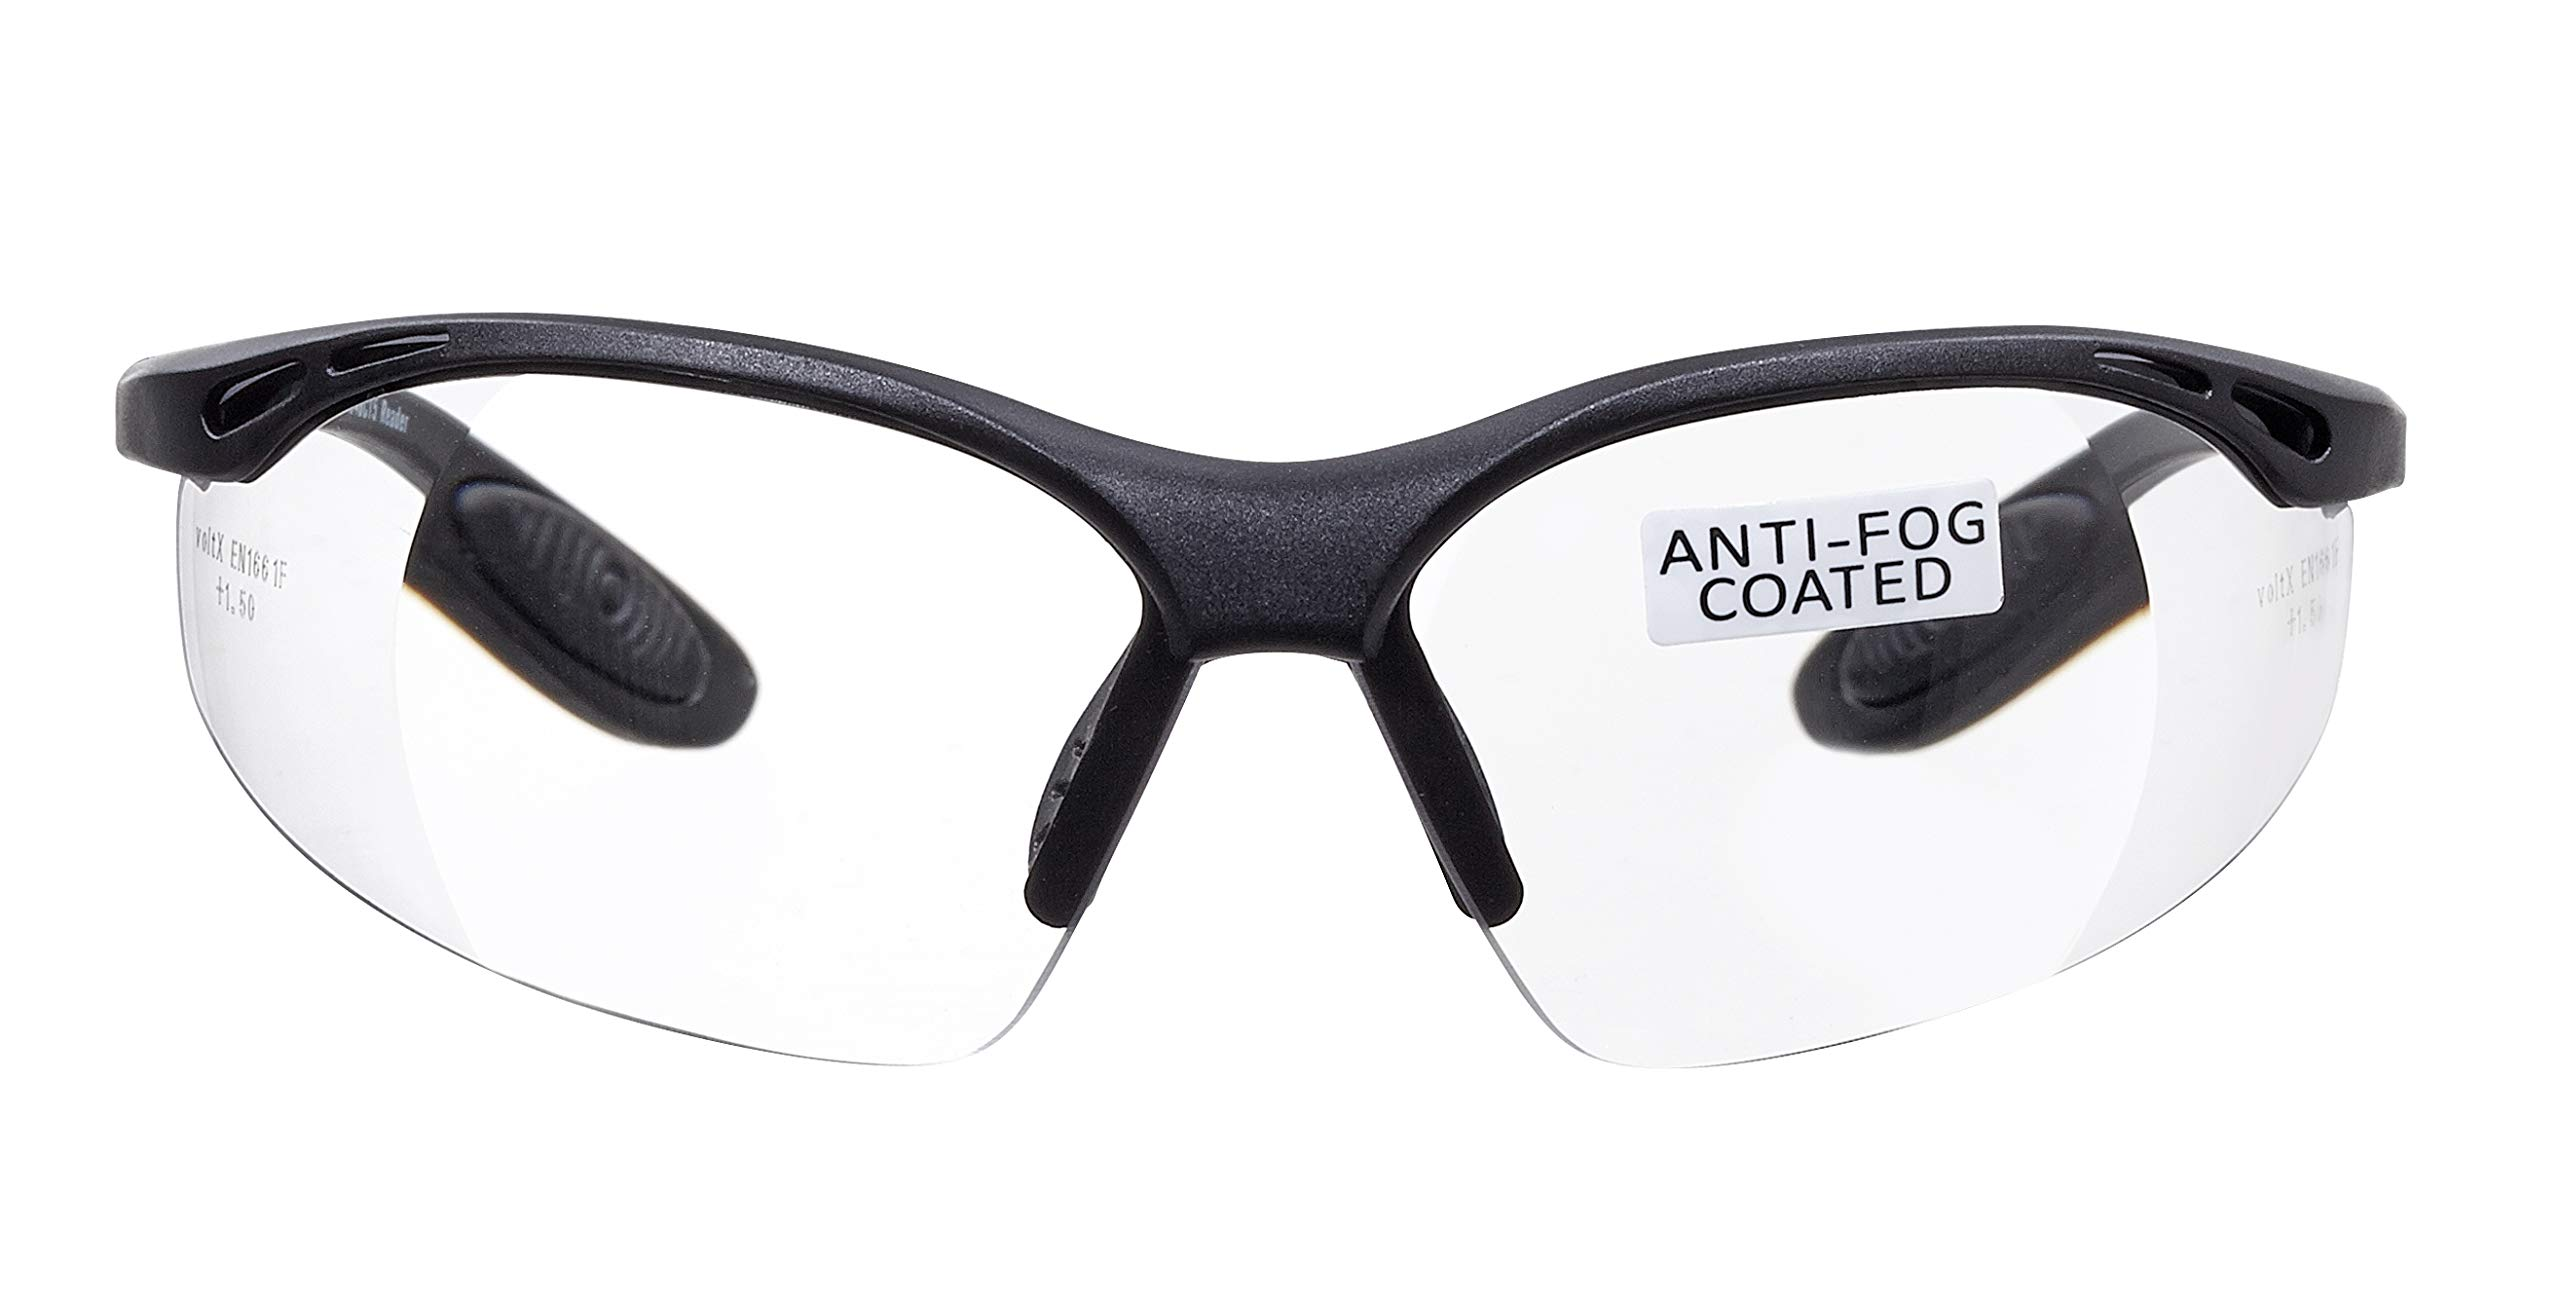 db0e273c775 voltX  Constructor  SAFETY READERS (Clear +2.5 Dioptre) Full Lens Reading  Safety